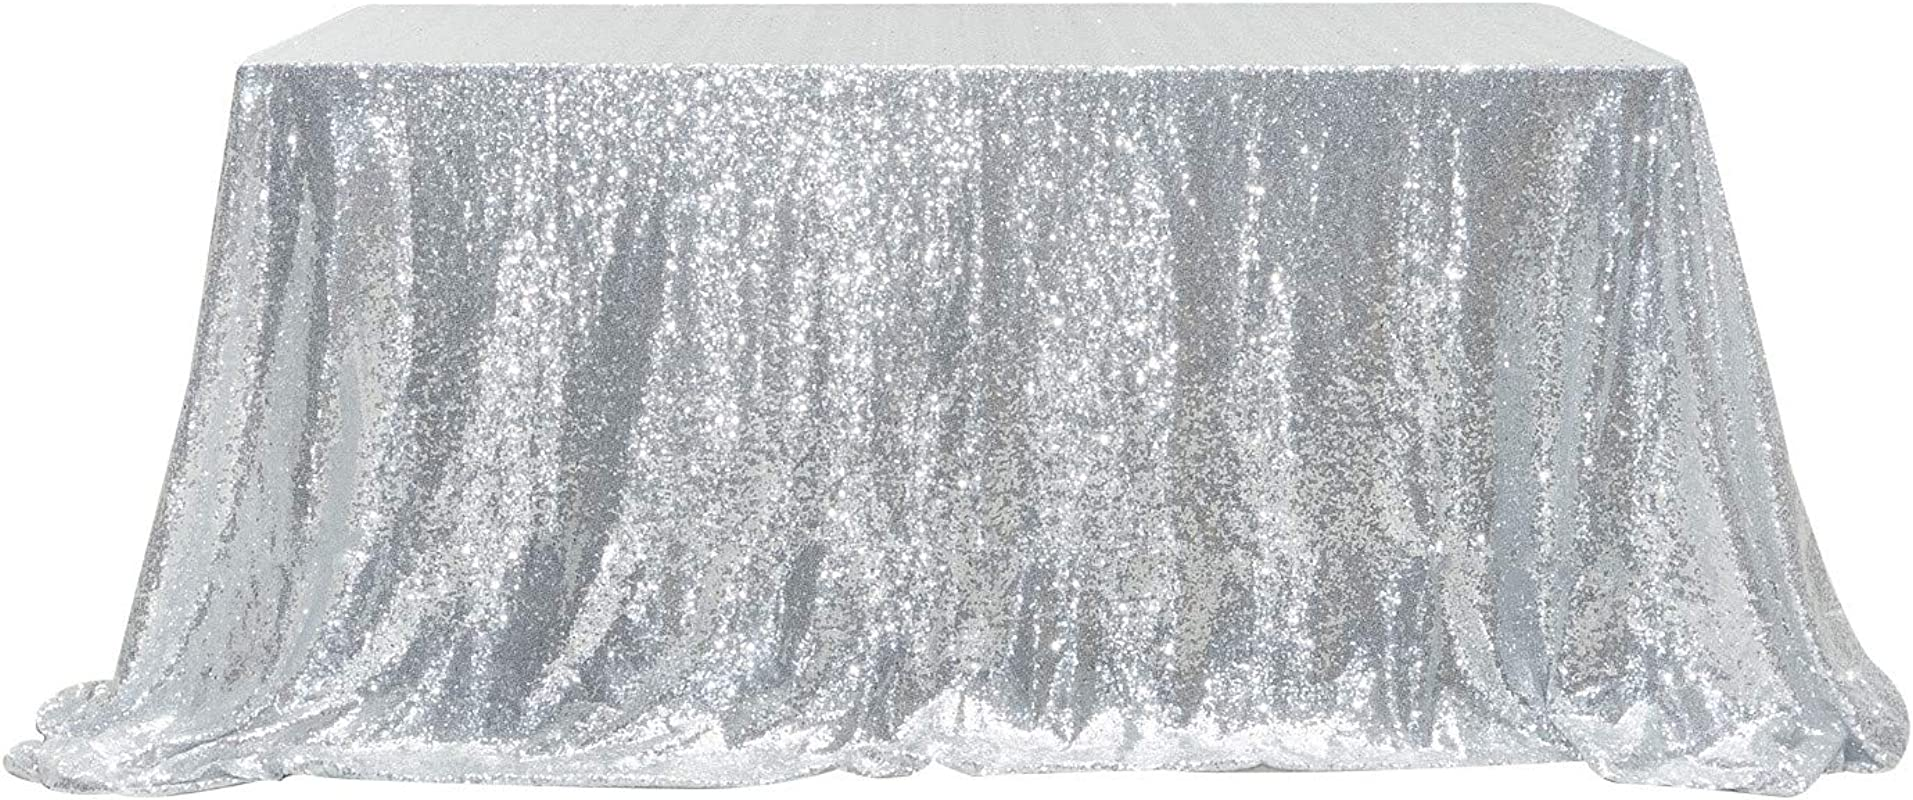 PartyDelight Sequin Tablecloth Rectangular 60 X120 Silver